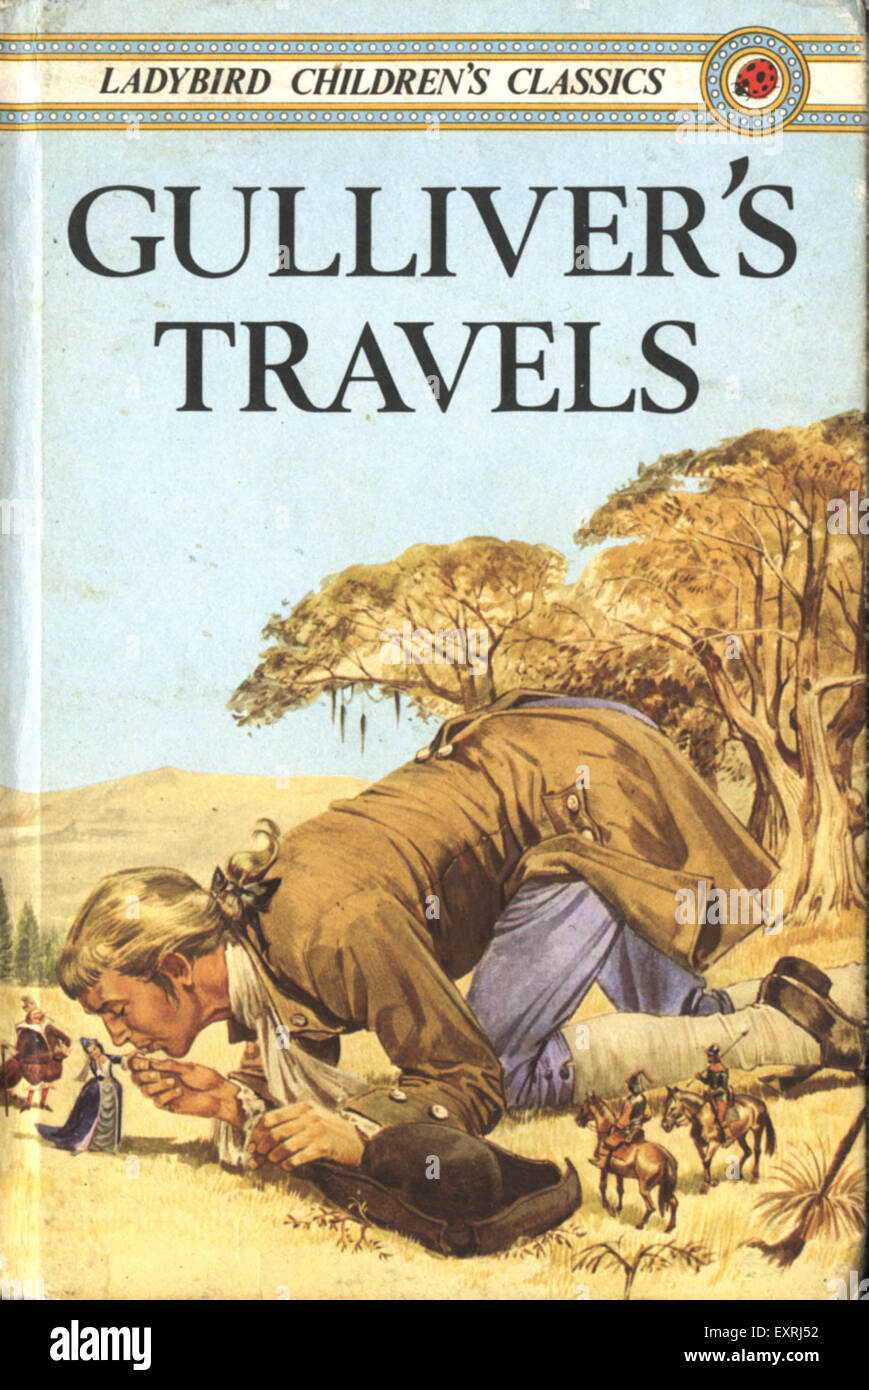 Gullivers Travels Book